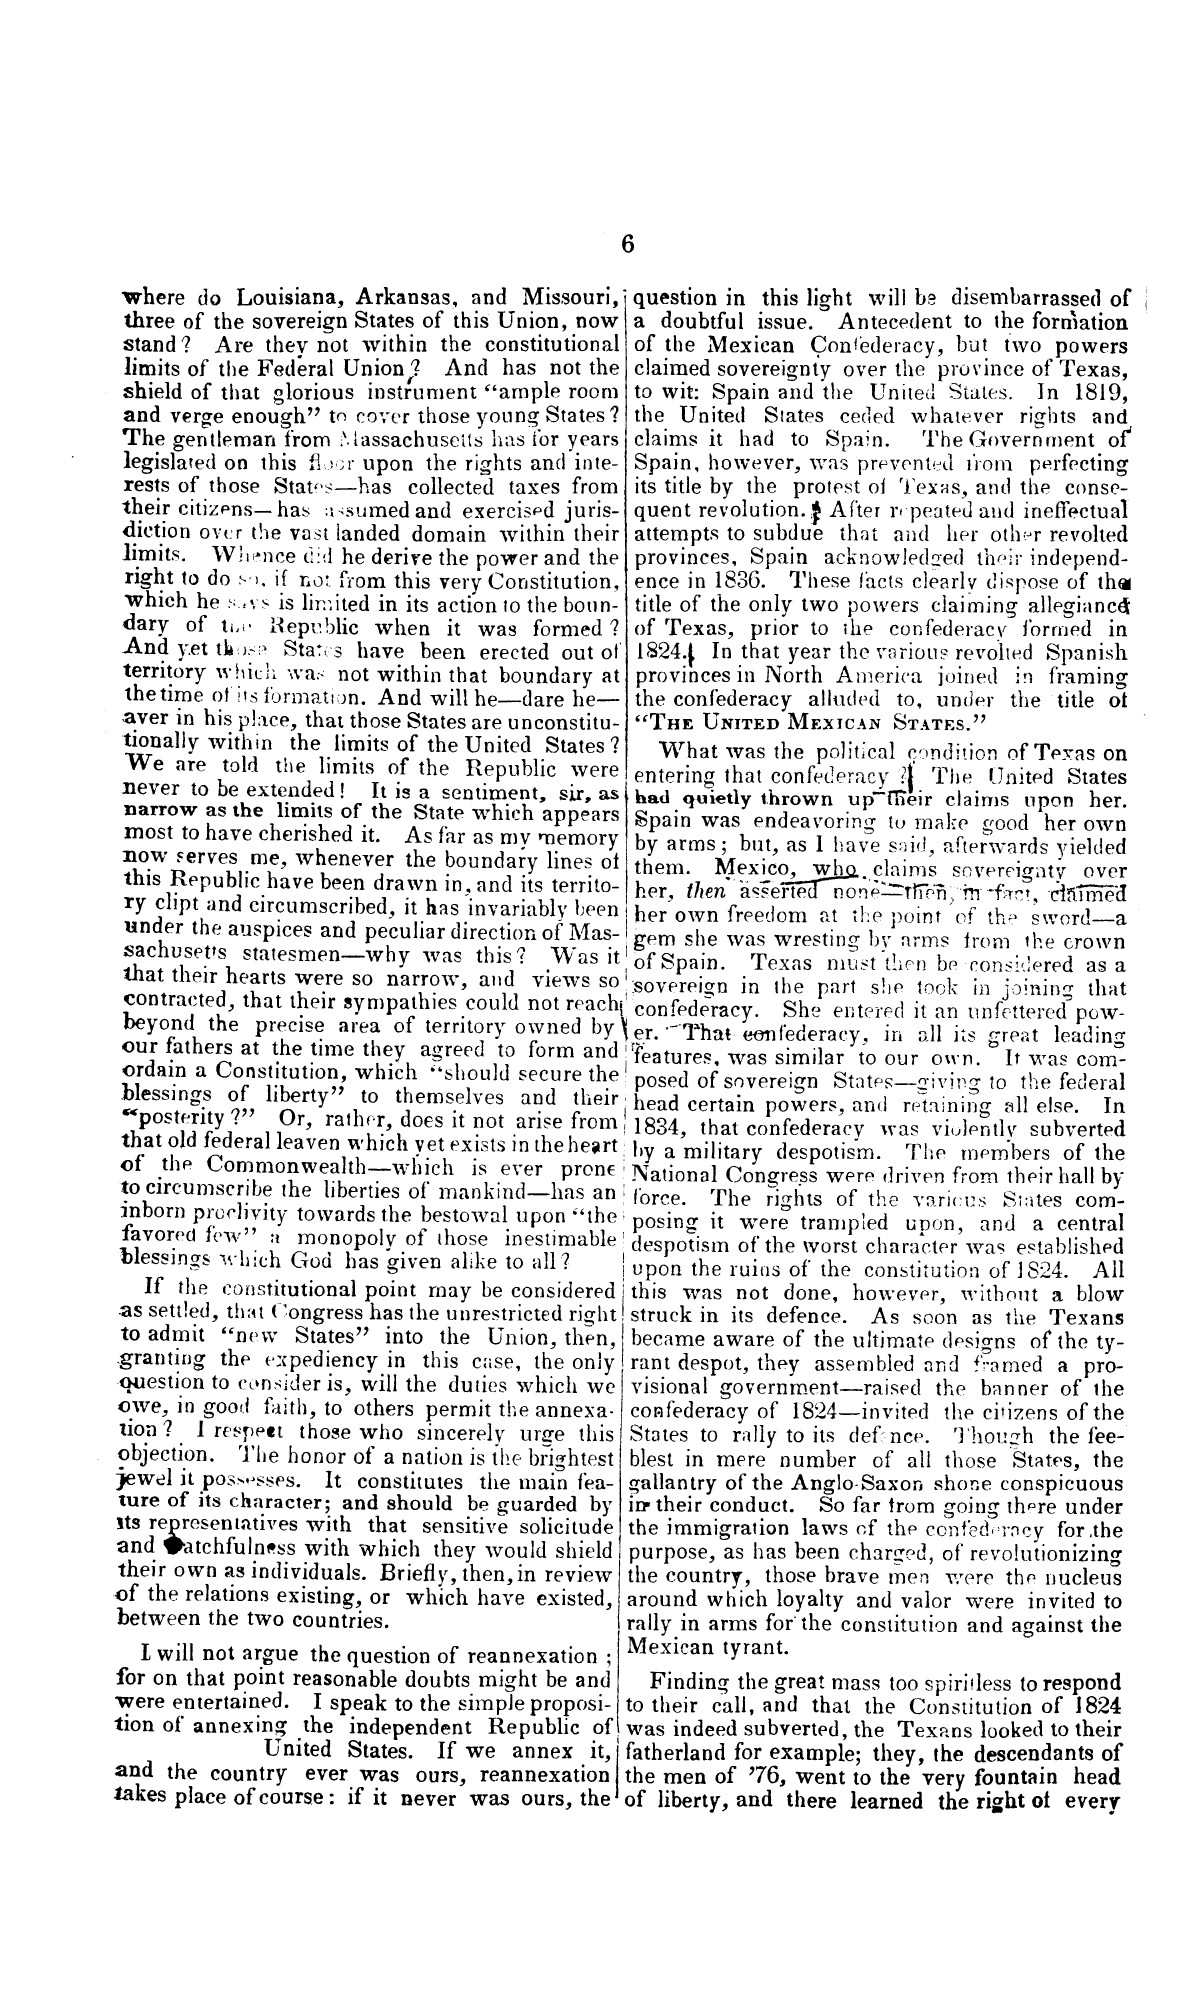 Speech of Hon. Wm. Lowndes Yancey, of Alabama, on the annexation of Texas to the United States, delivered in the House of Representatives, Jan. 7, 1845.                                                                                                      [Sequence #]: 6 of 14